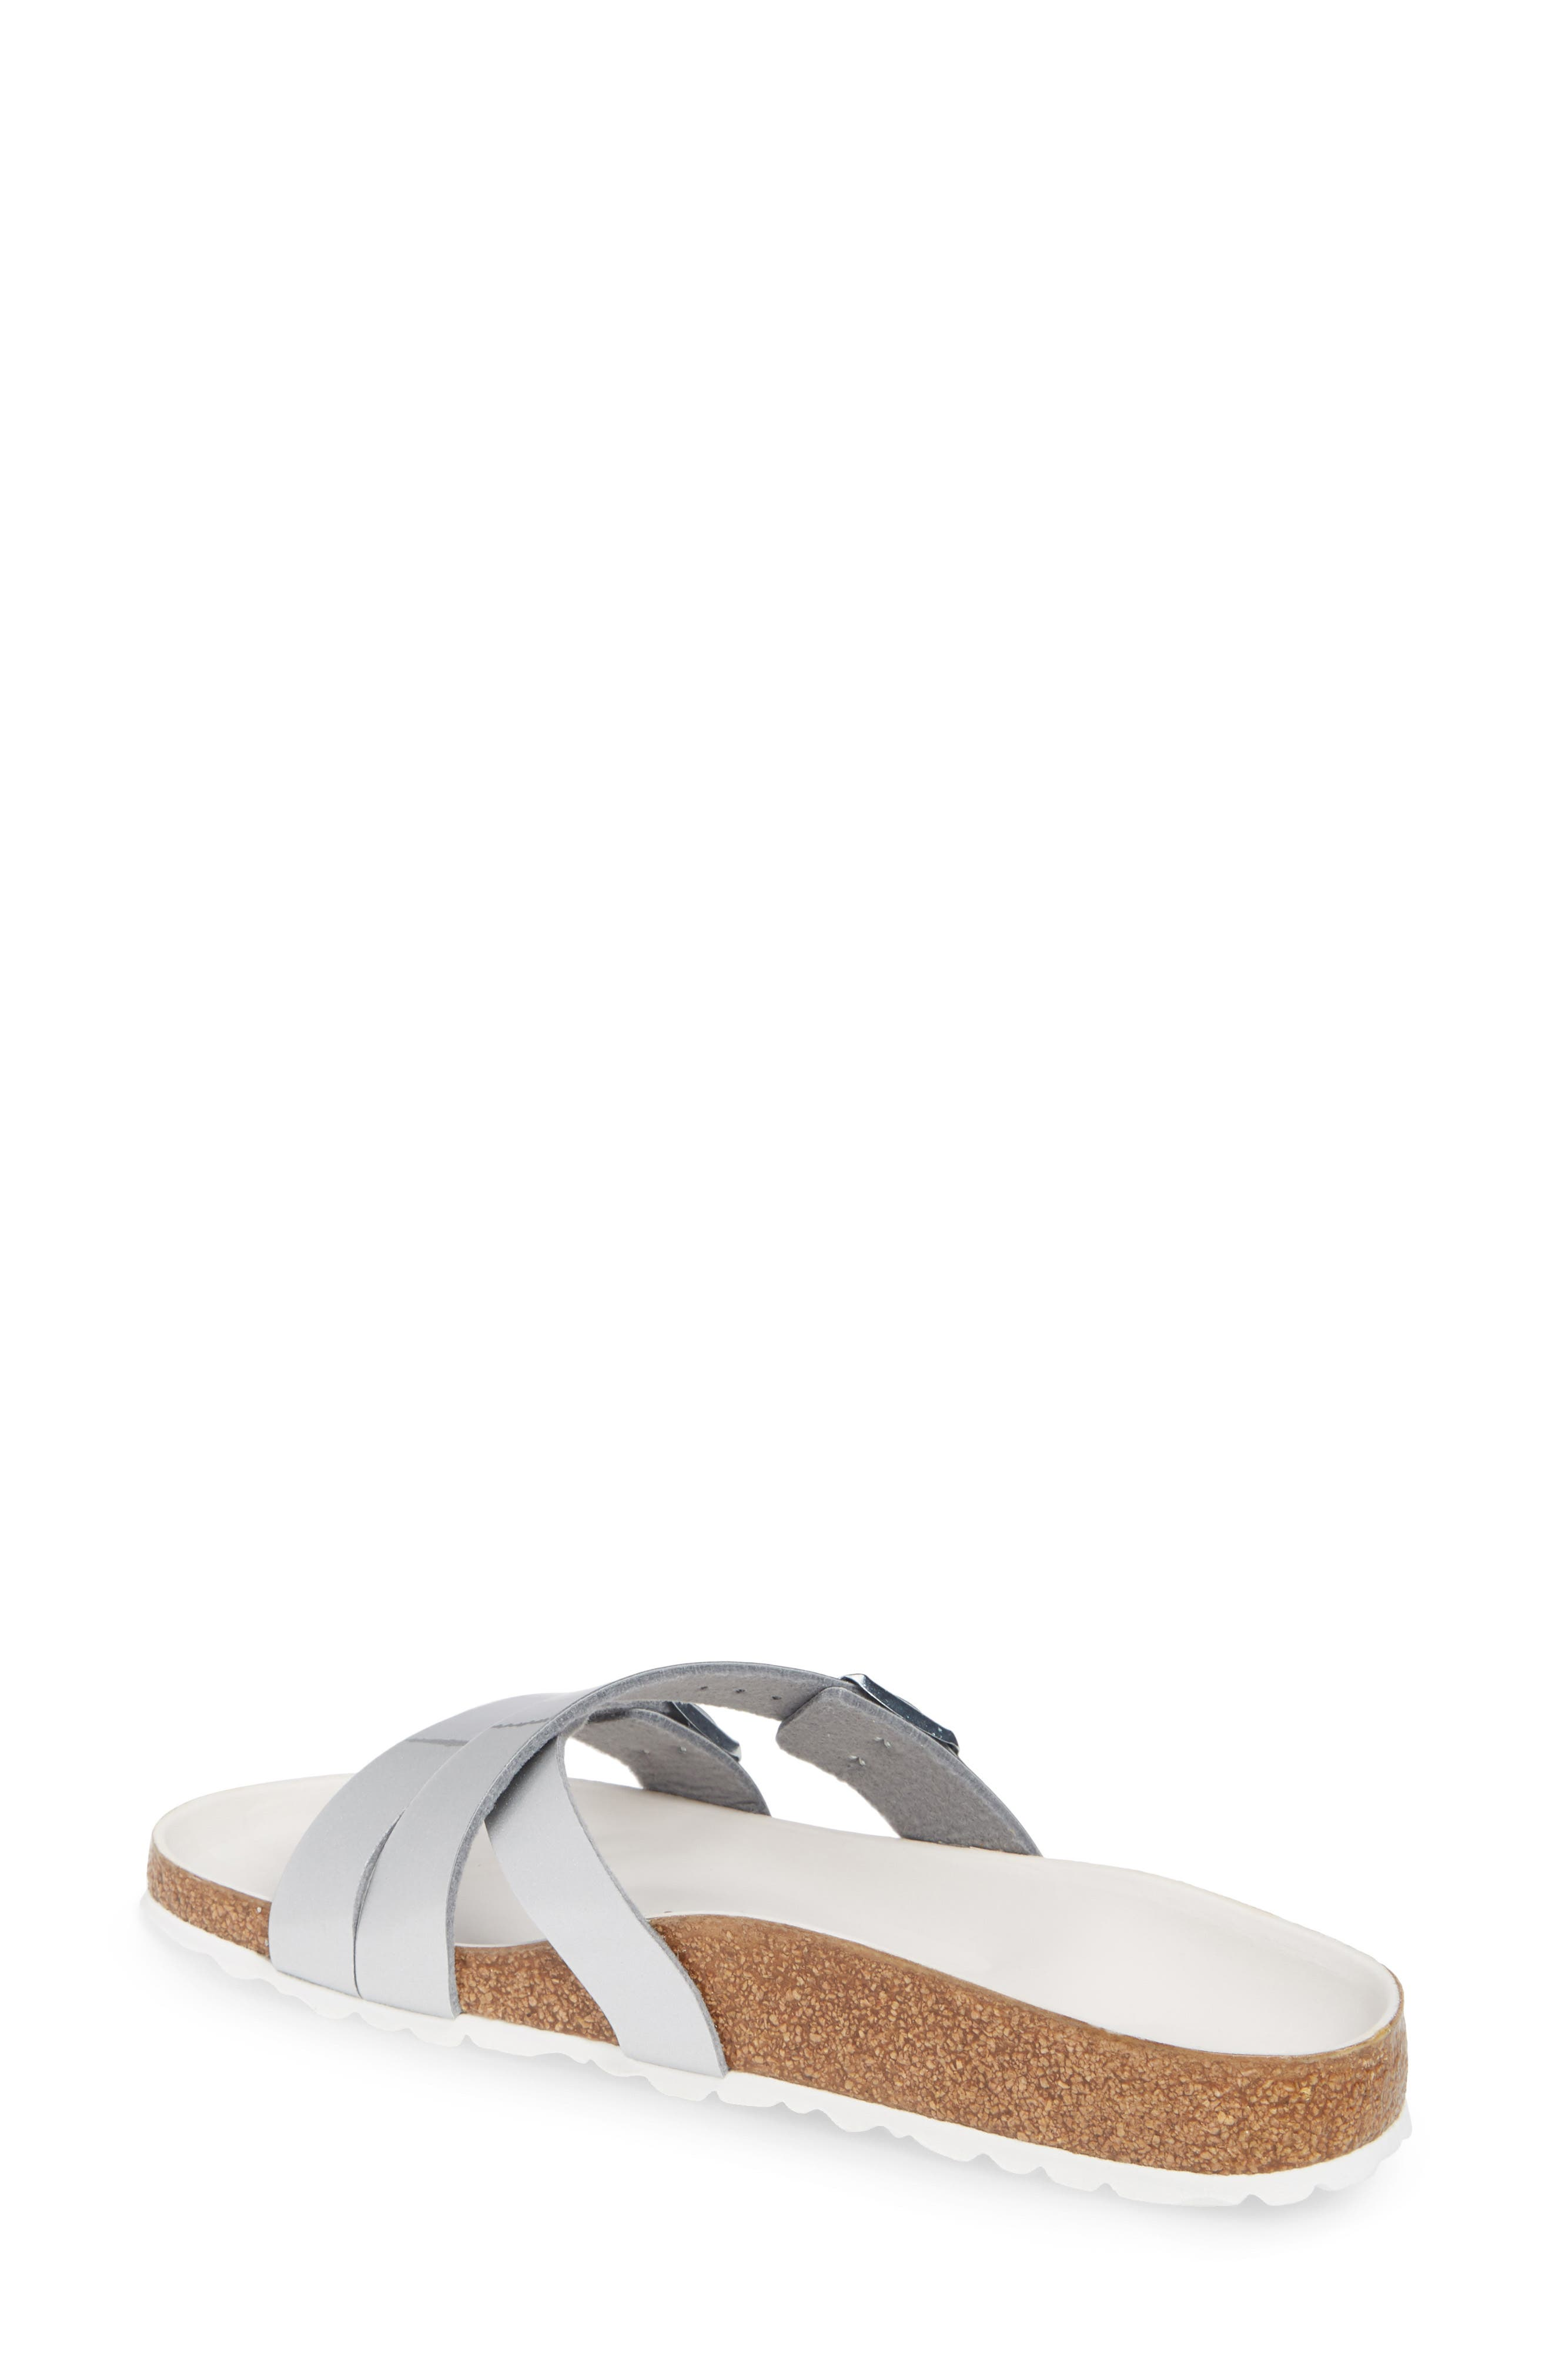 BIRKENSTOCK,                             Yao Metallic Slide Sandal,                             Alternate thumbnail 2, color,                             METALLIC SILVER